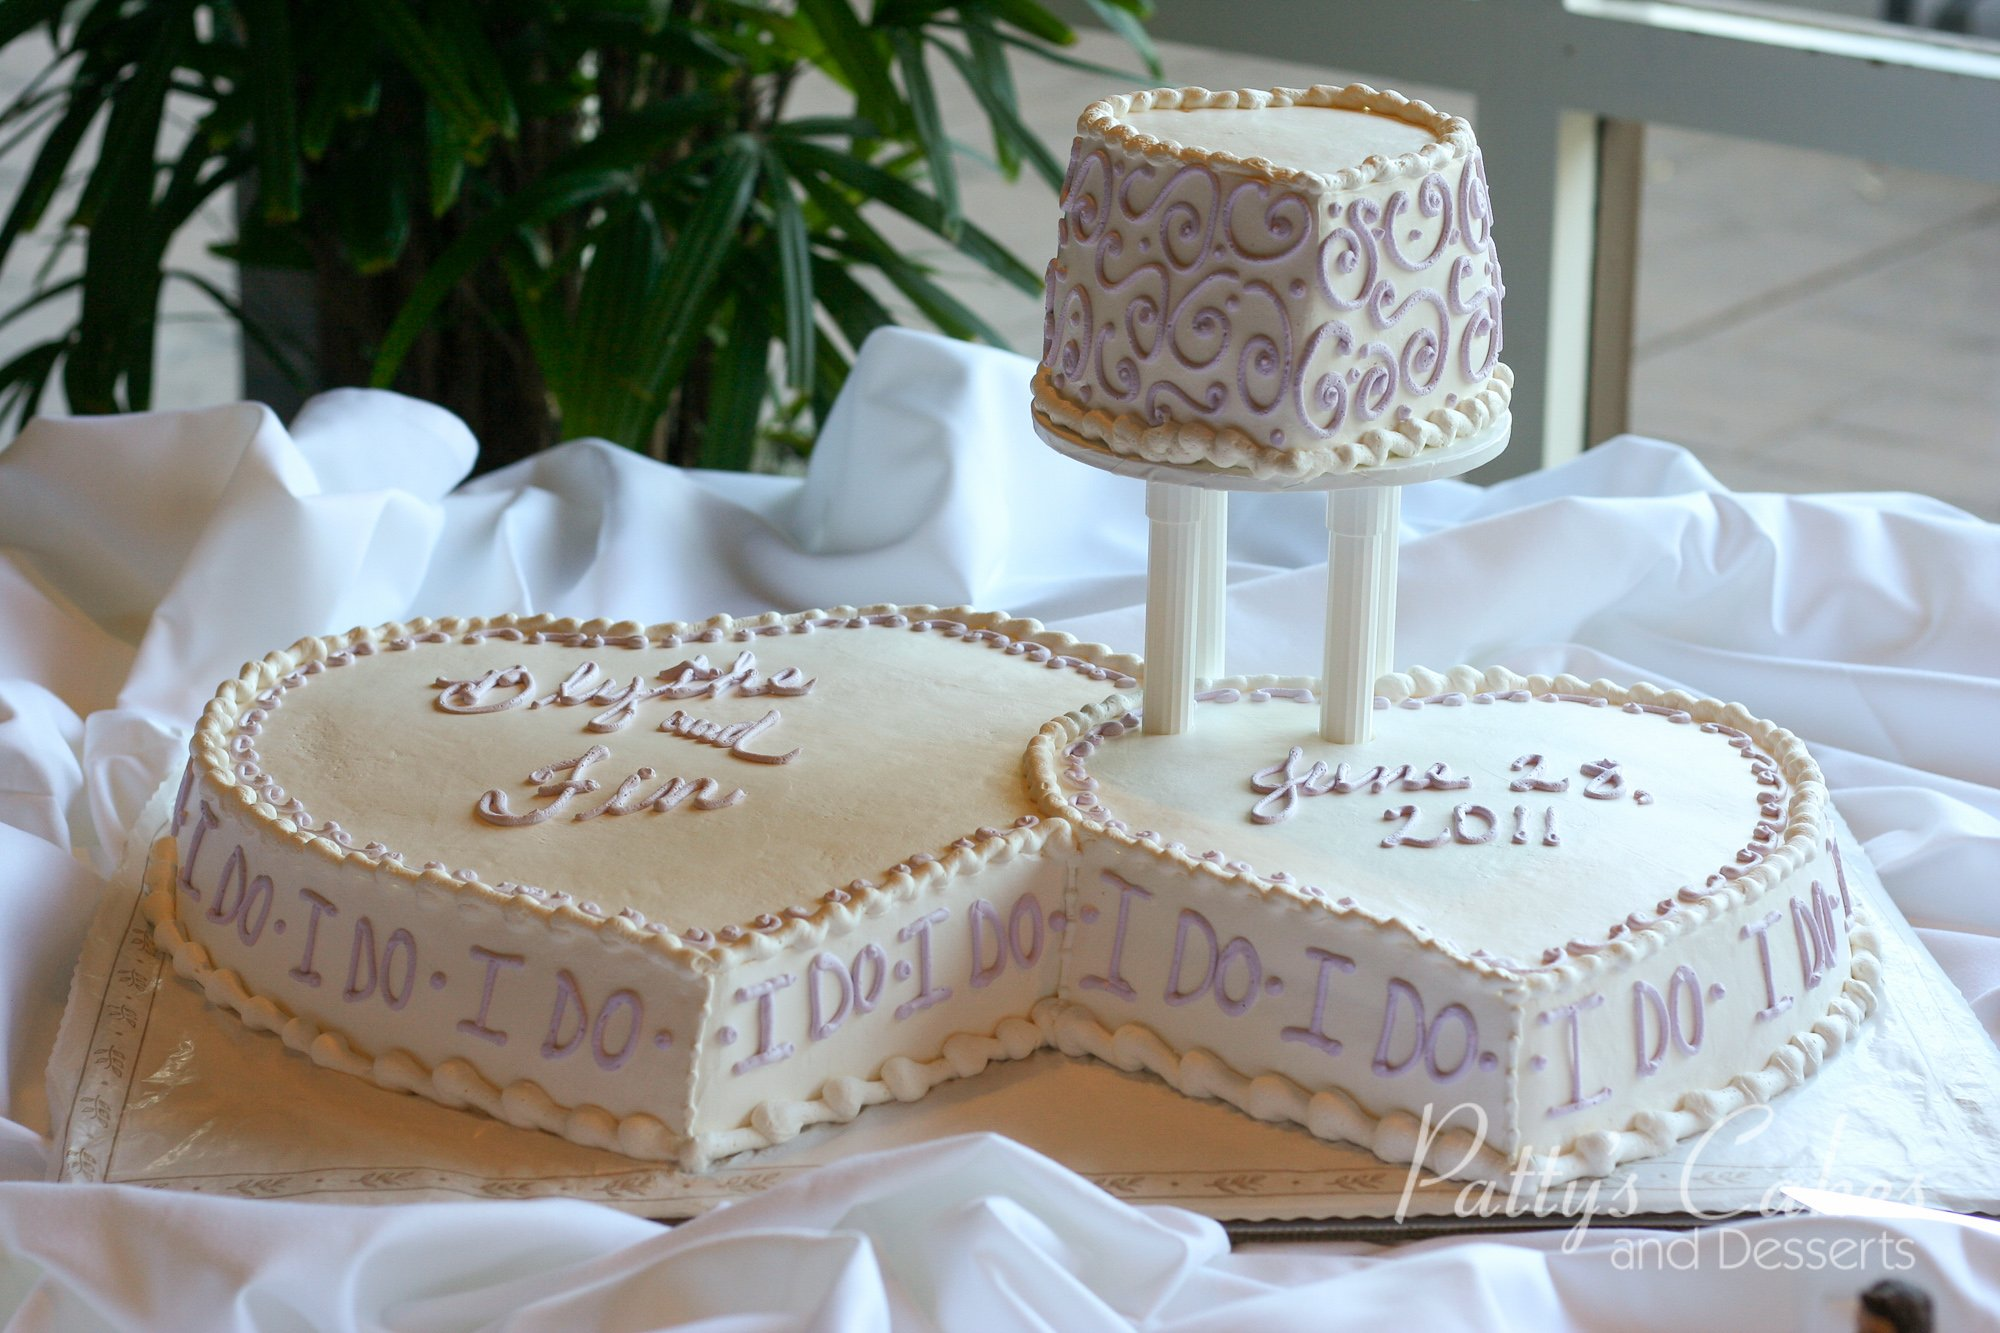 Photo of a double heart wedding cake - Patty's Cakes and ...